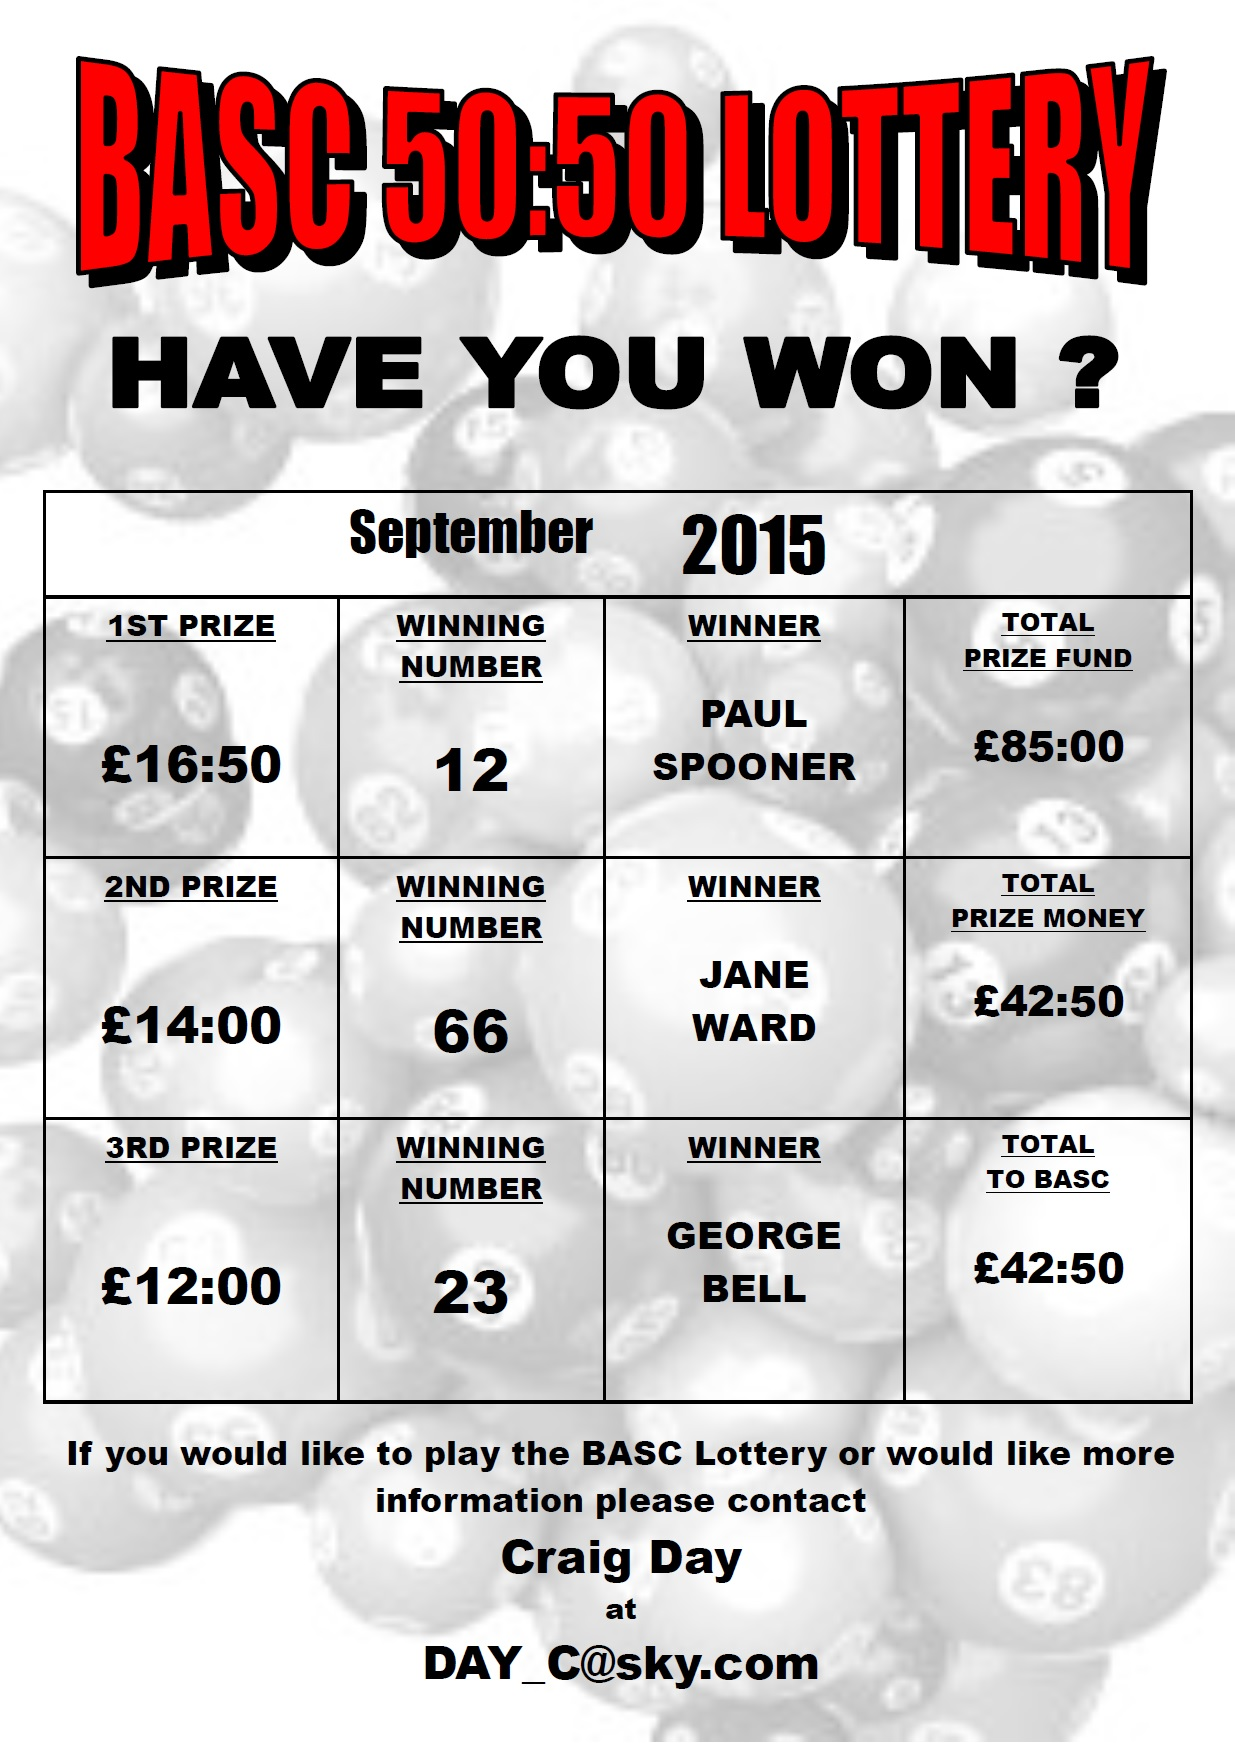 BASC 5050 Lottery Winners September 2015